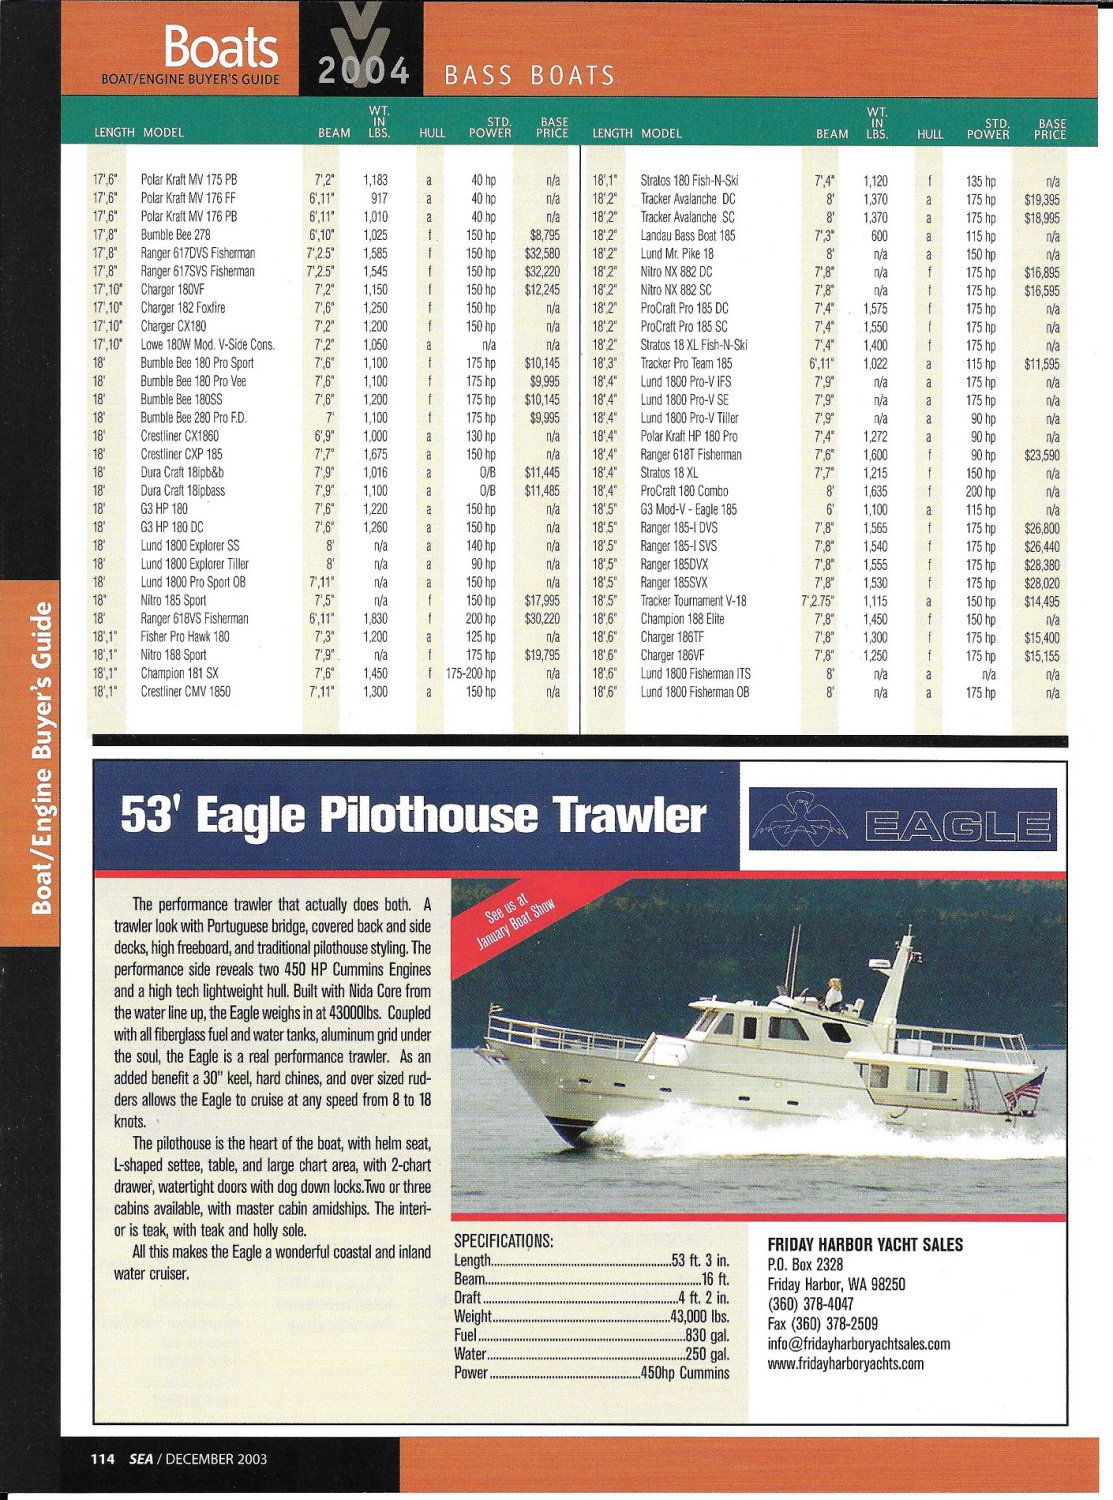 2004 Eagle 53' Pilothouse Trawler Review & Specs- Nice Photo